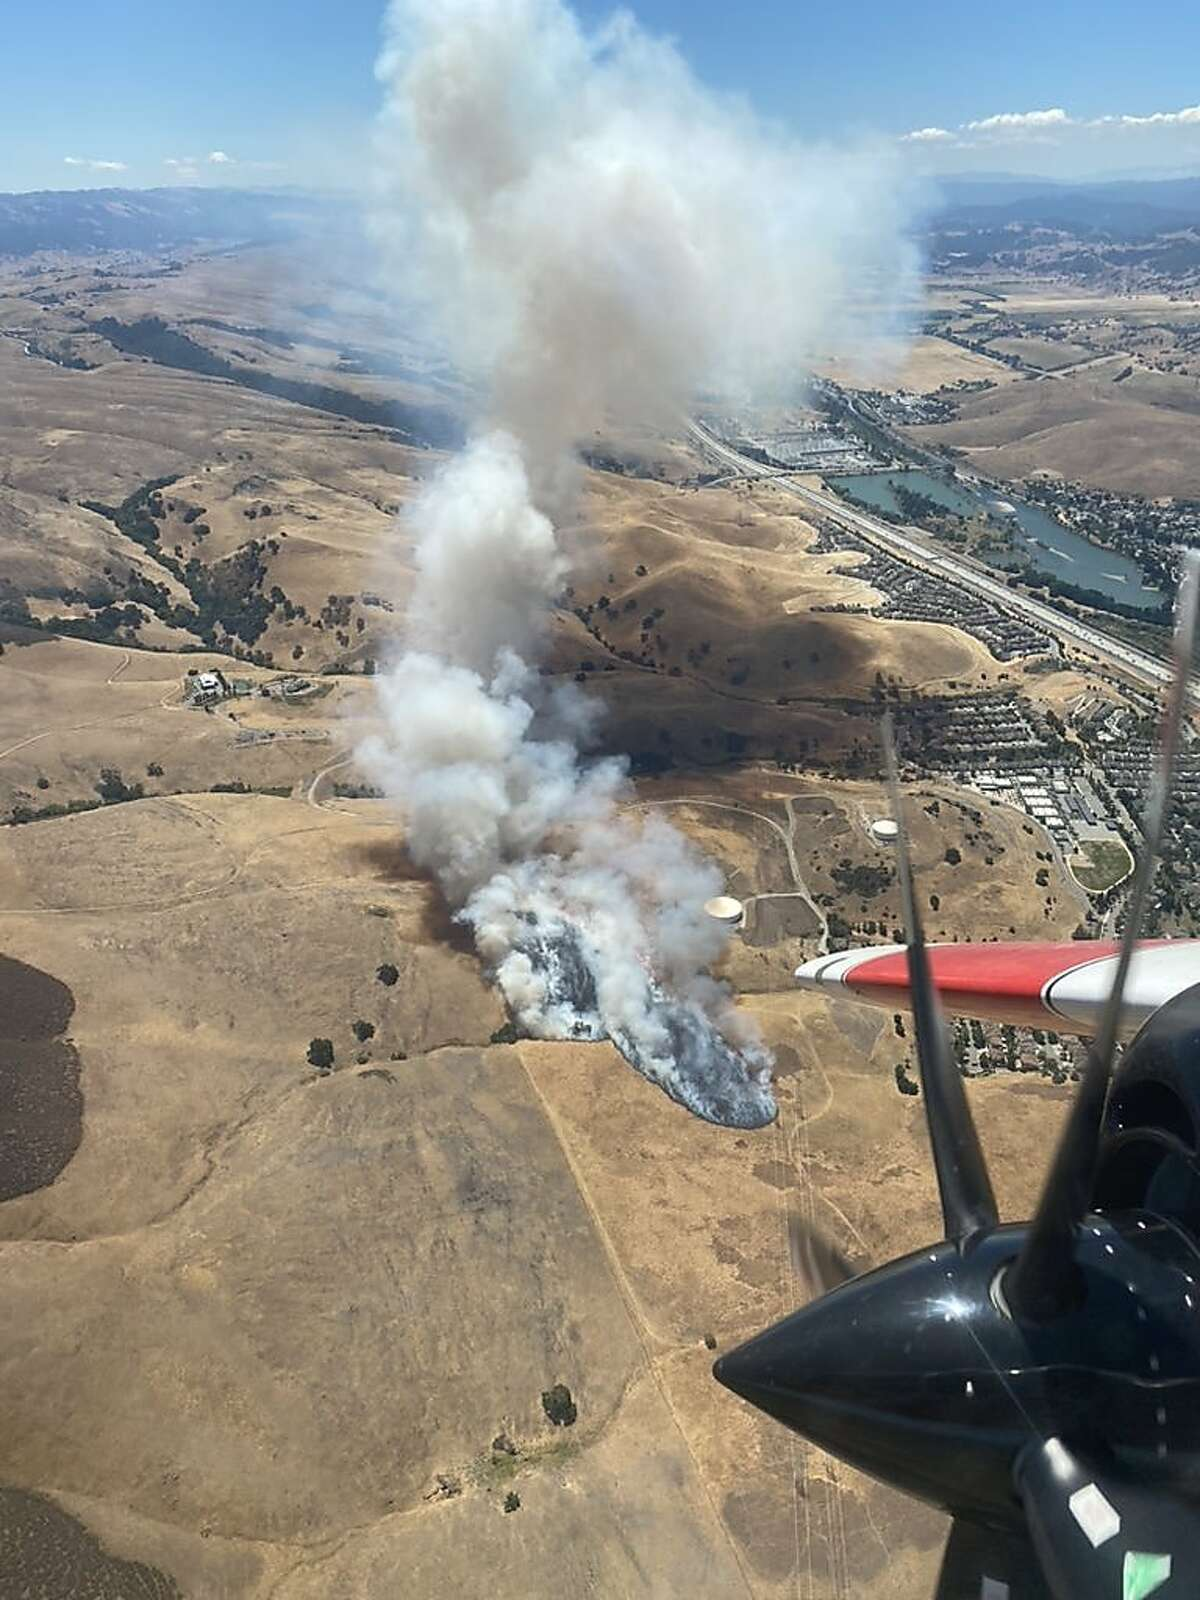 Firefighters are at scene of a vegetation fire on Silicon Valley Road and Basking Ridge in the San Jose area.